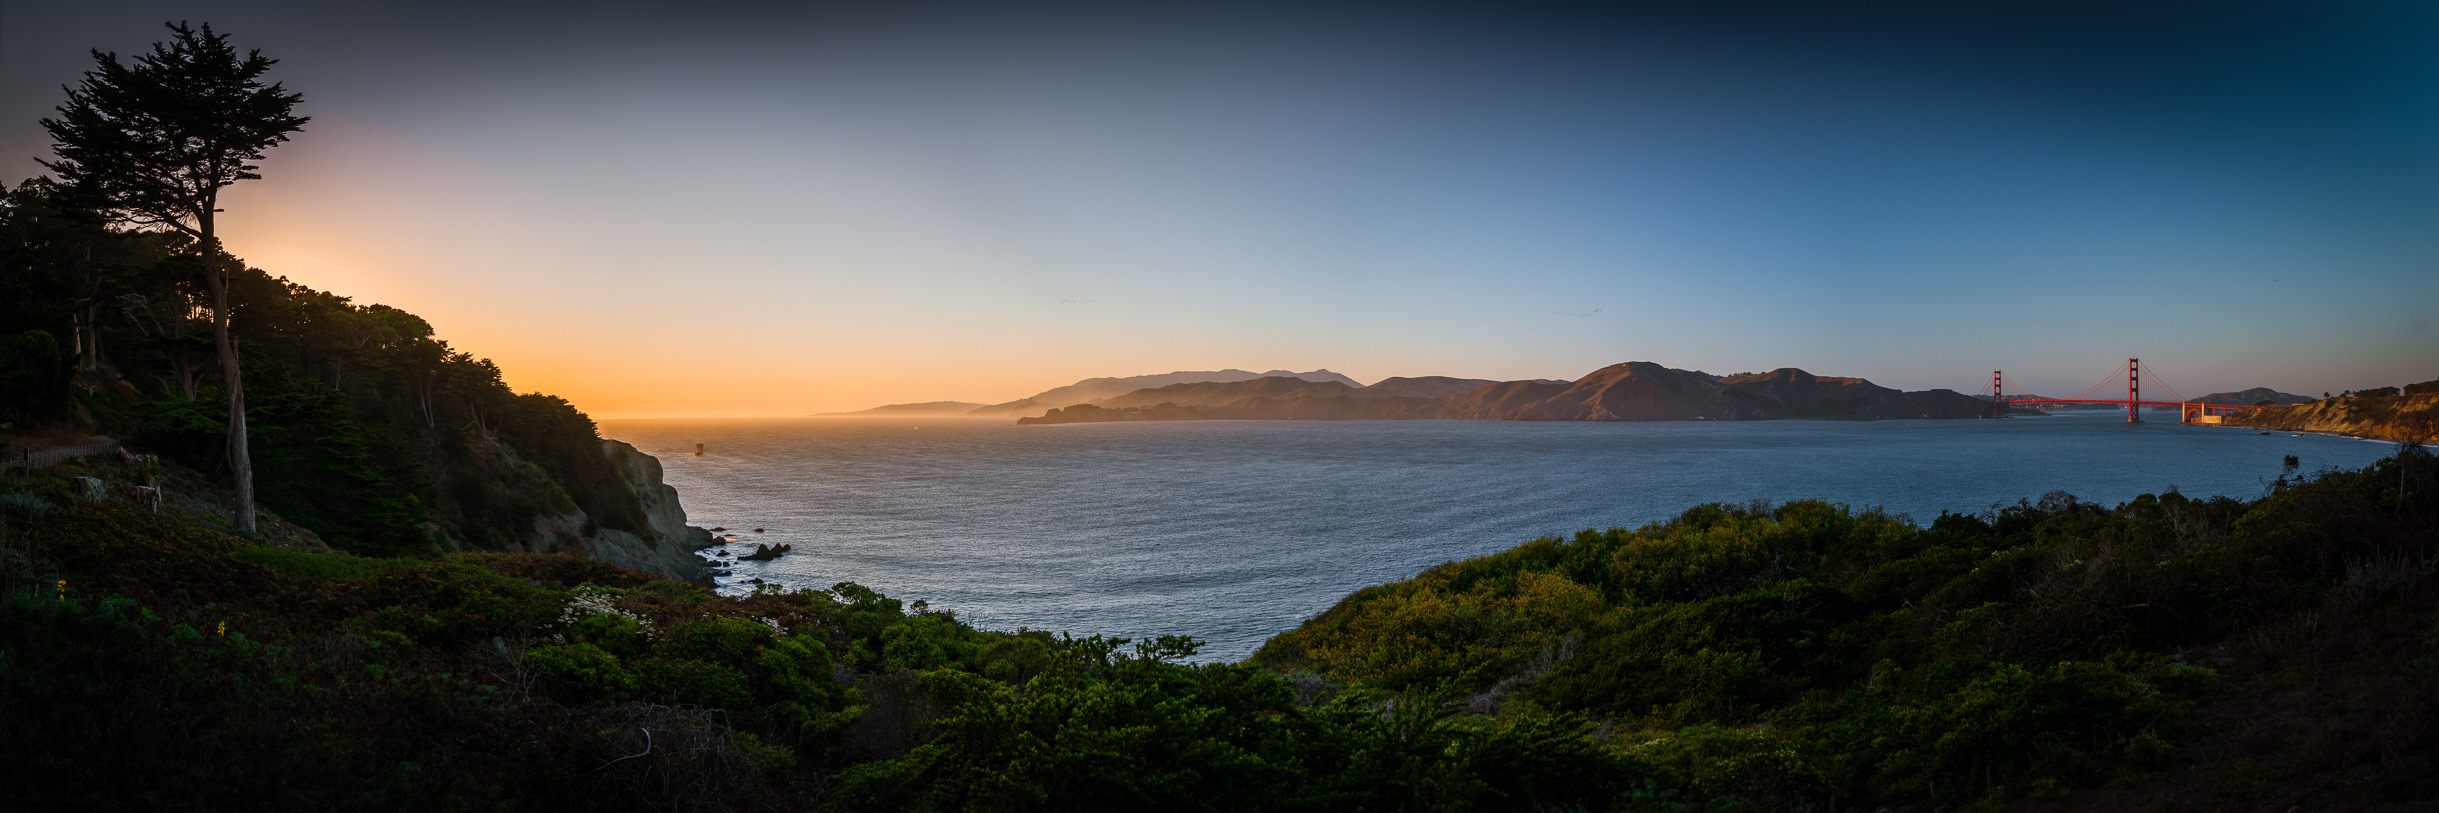 The sun sets on the Golden Gate—the narrow strait between San Francisco and the Marin Headlands that connects San Francisco Bay with the Pacific Ocean.